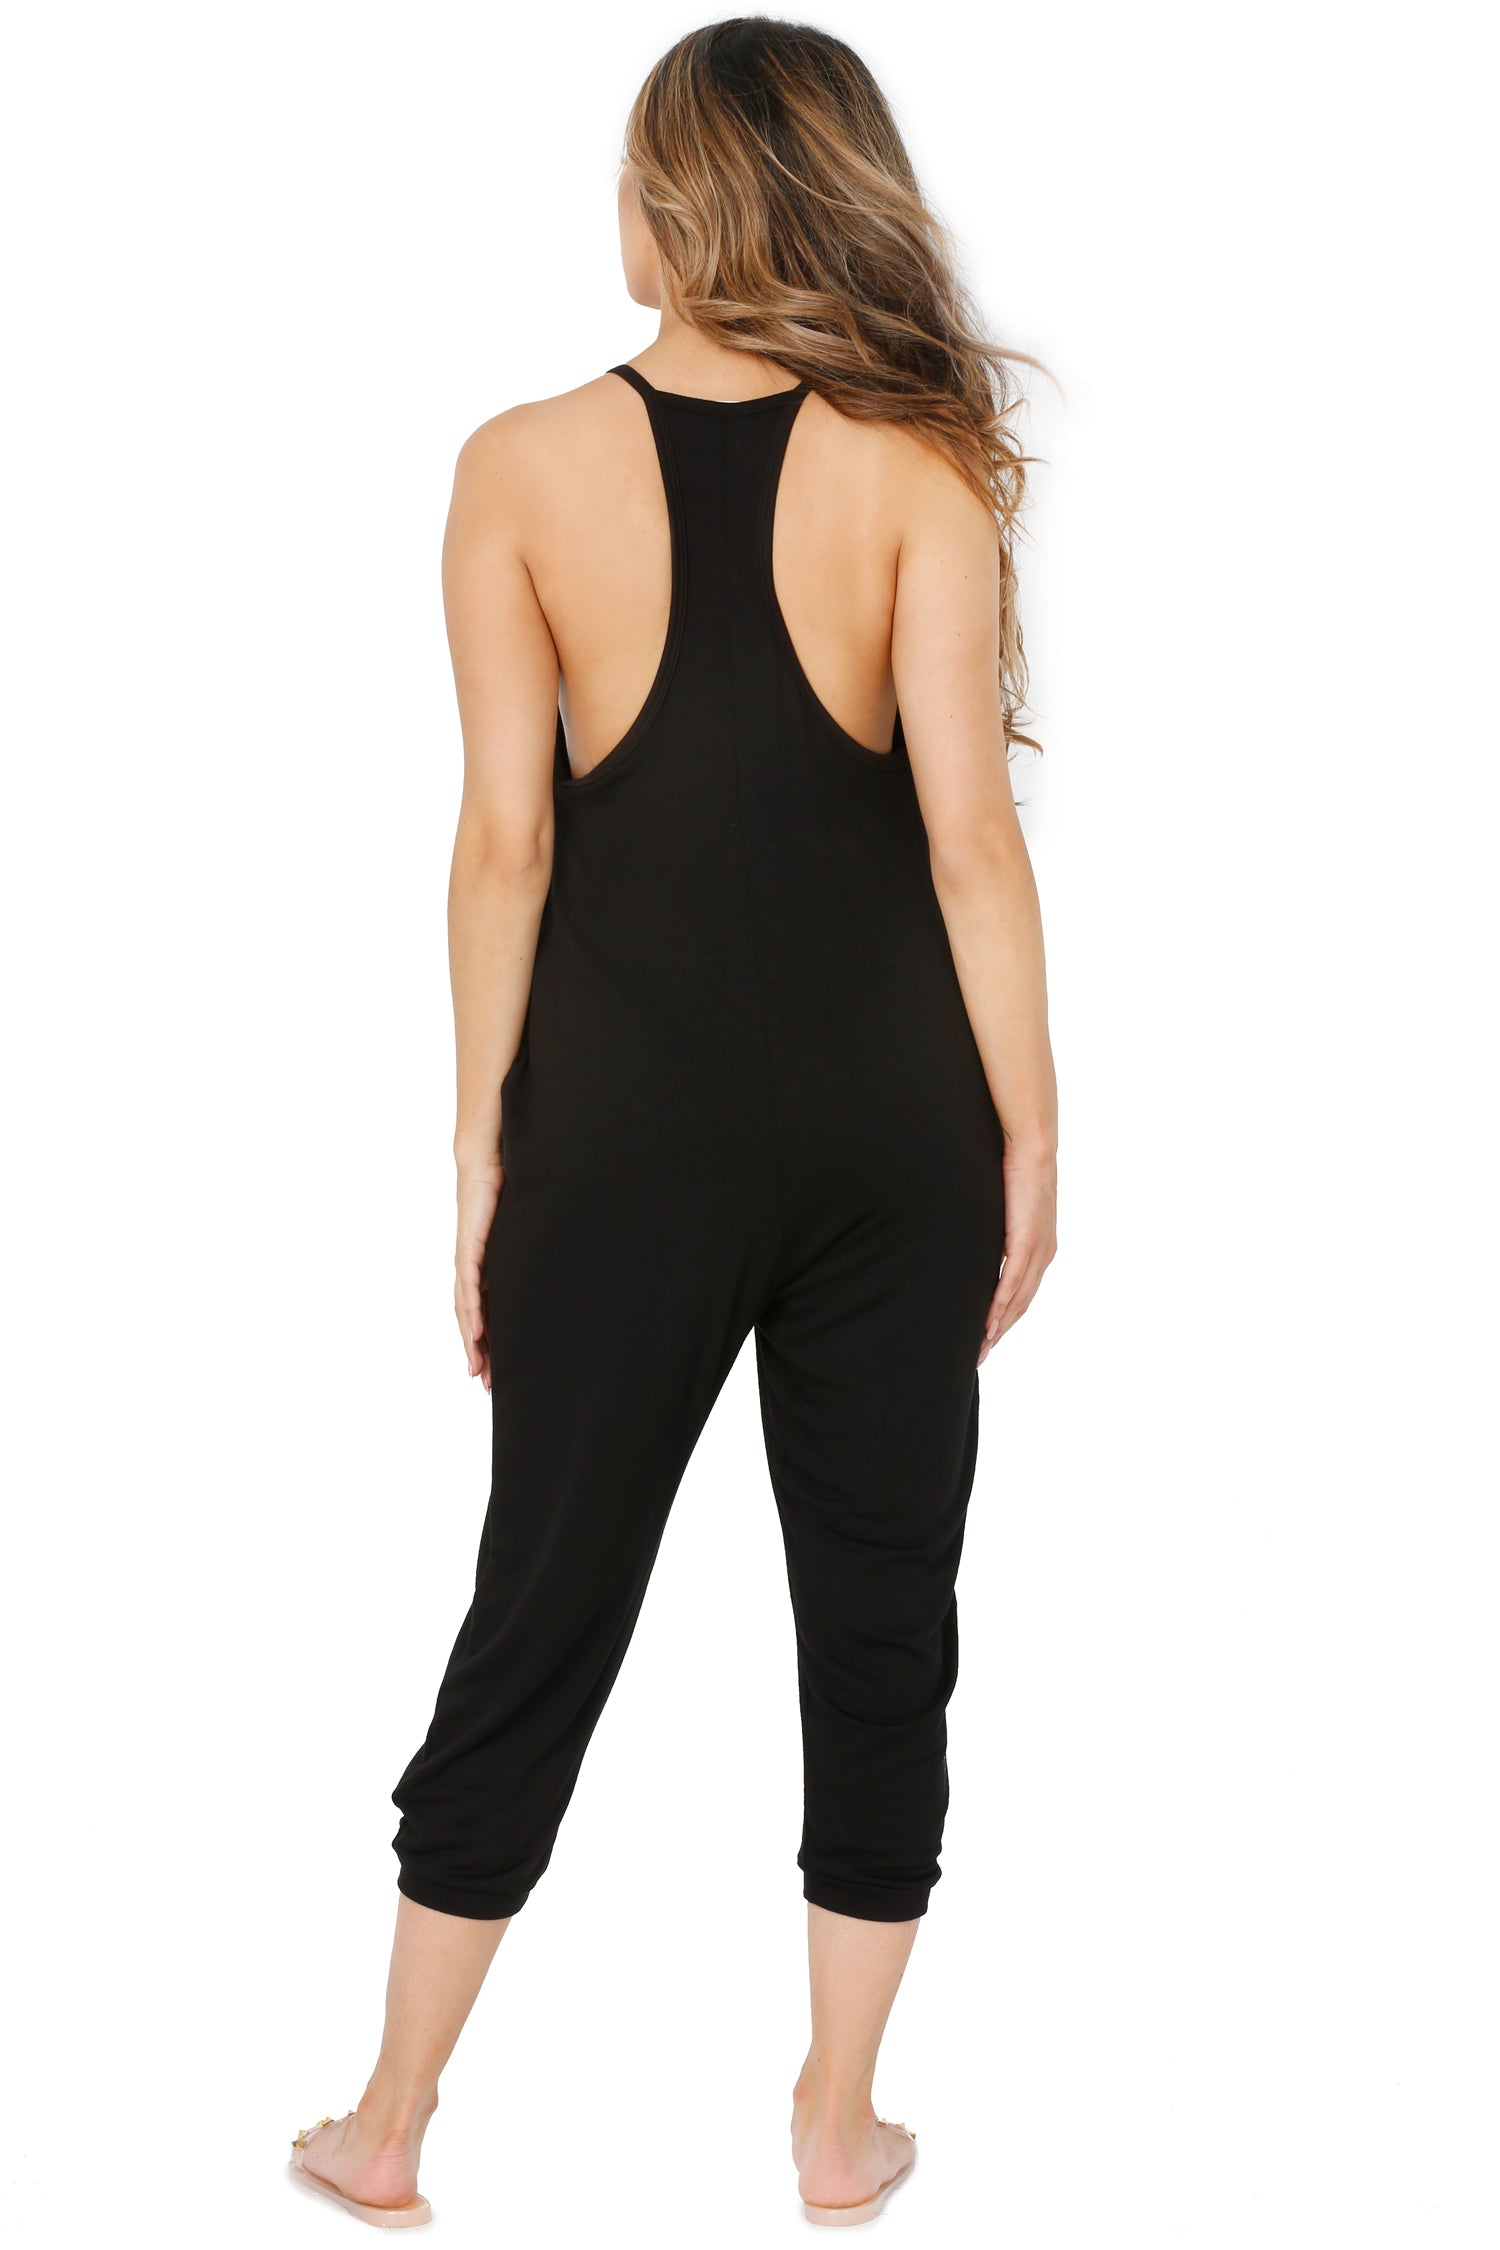 LAZY SUNDAY JUMPSUIT (AVAILABLE XS-XL)